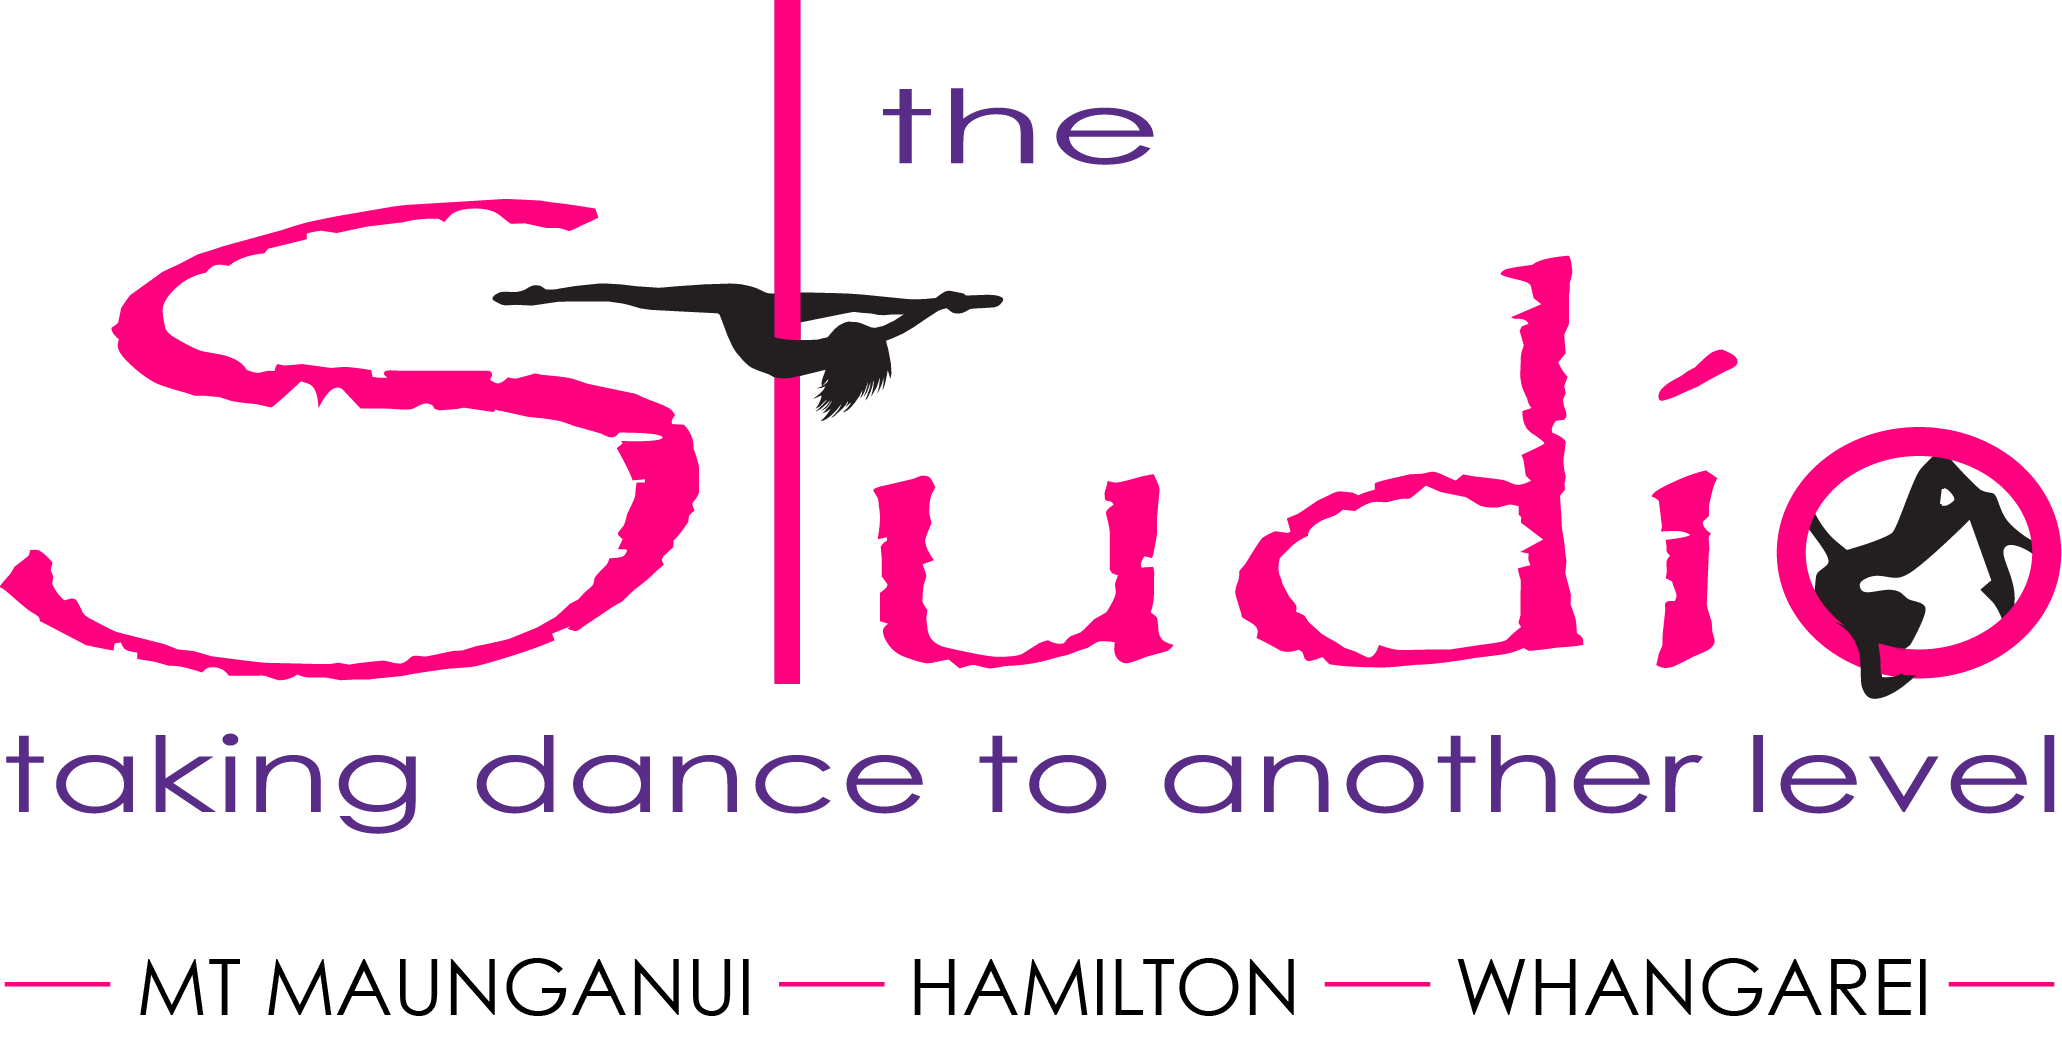 Hamilton : Contact Us  :  The Studio